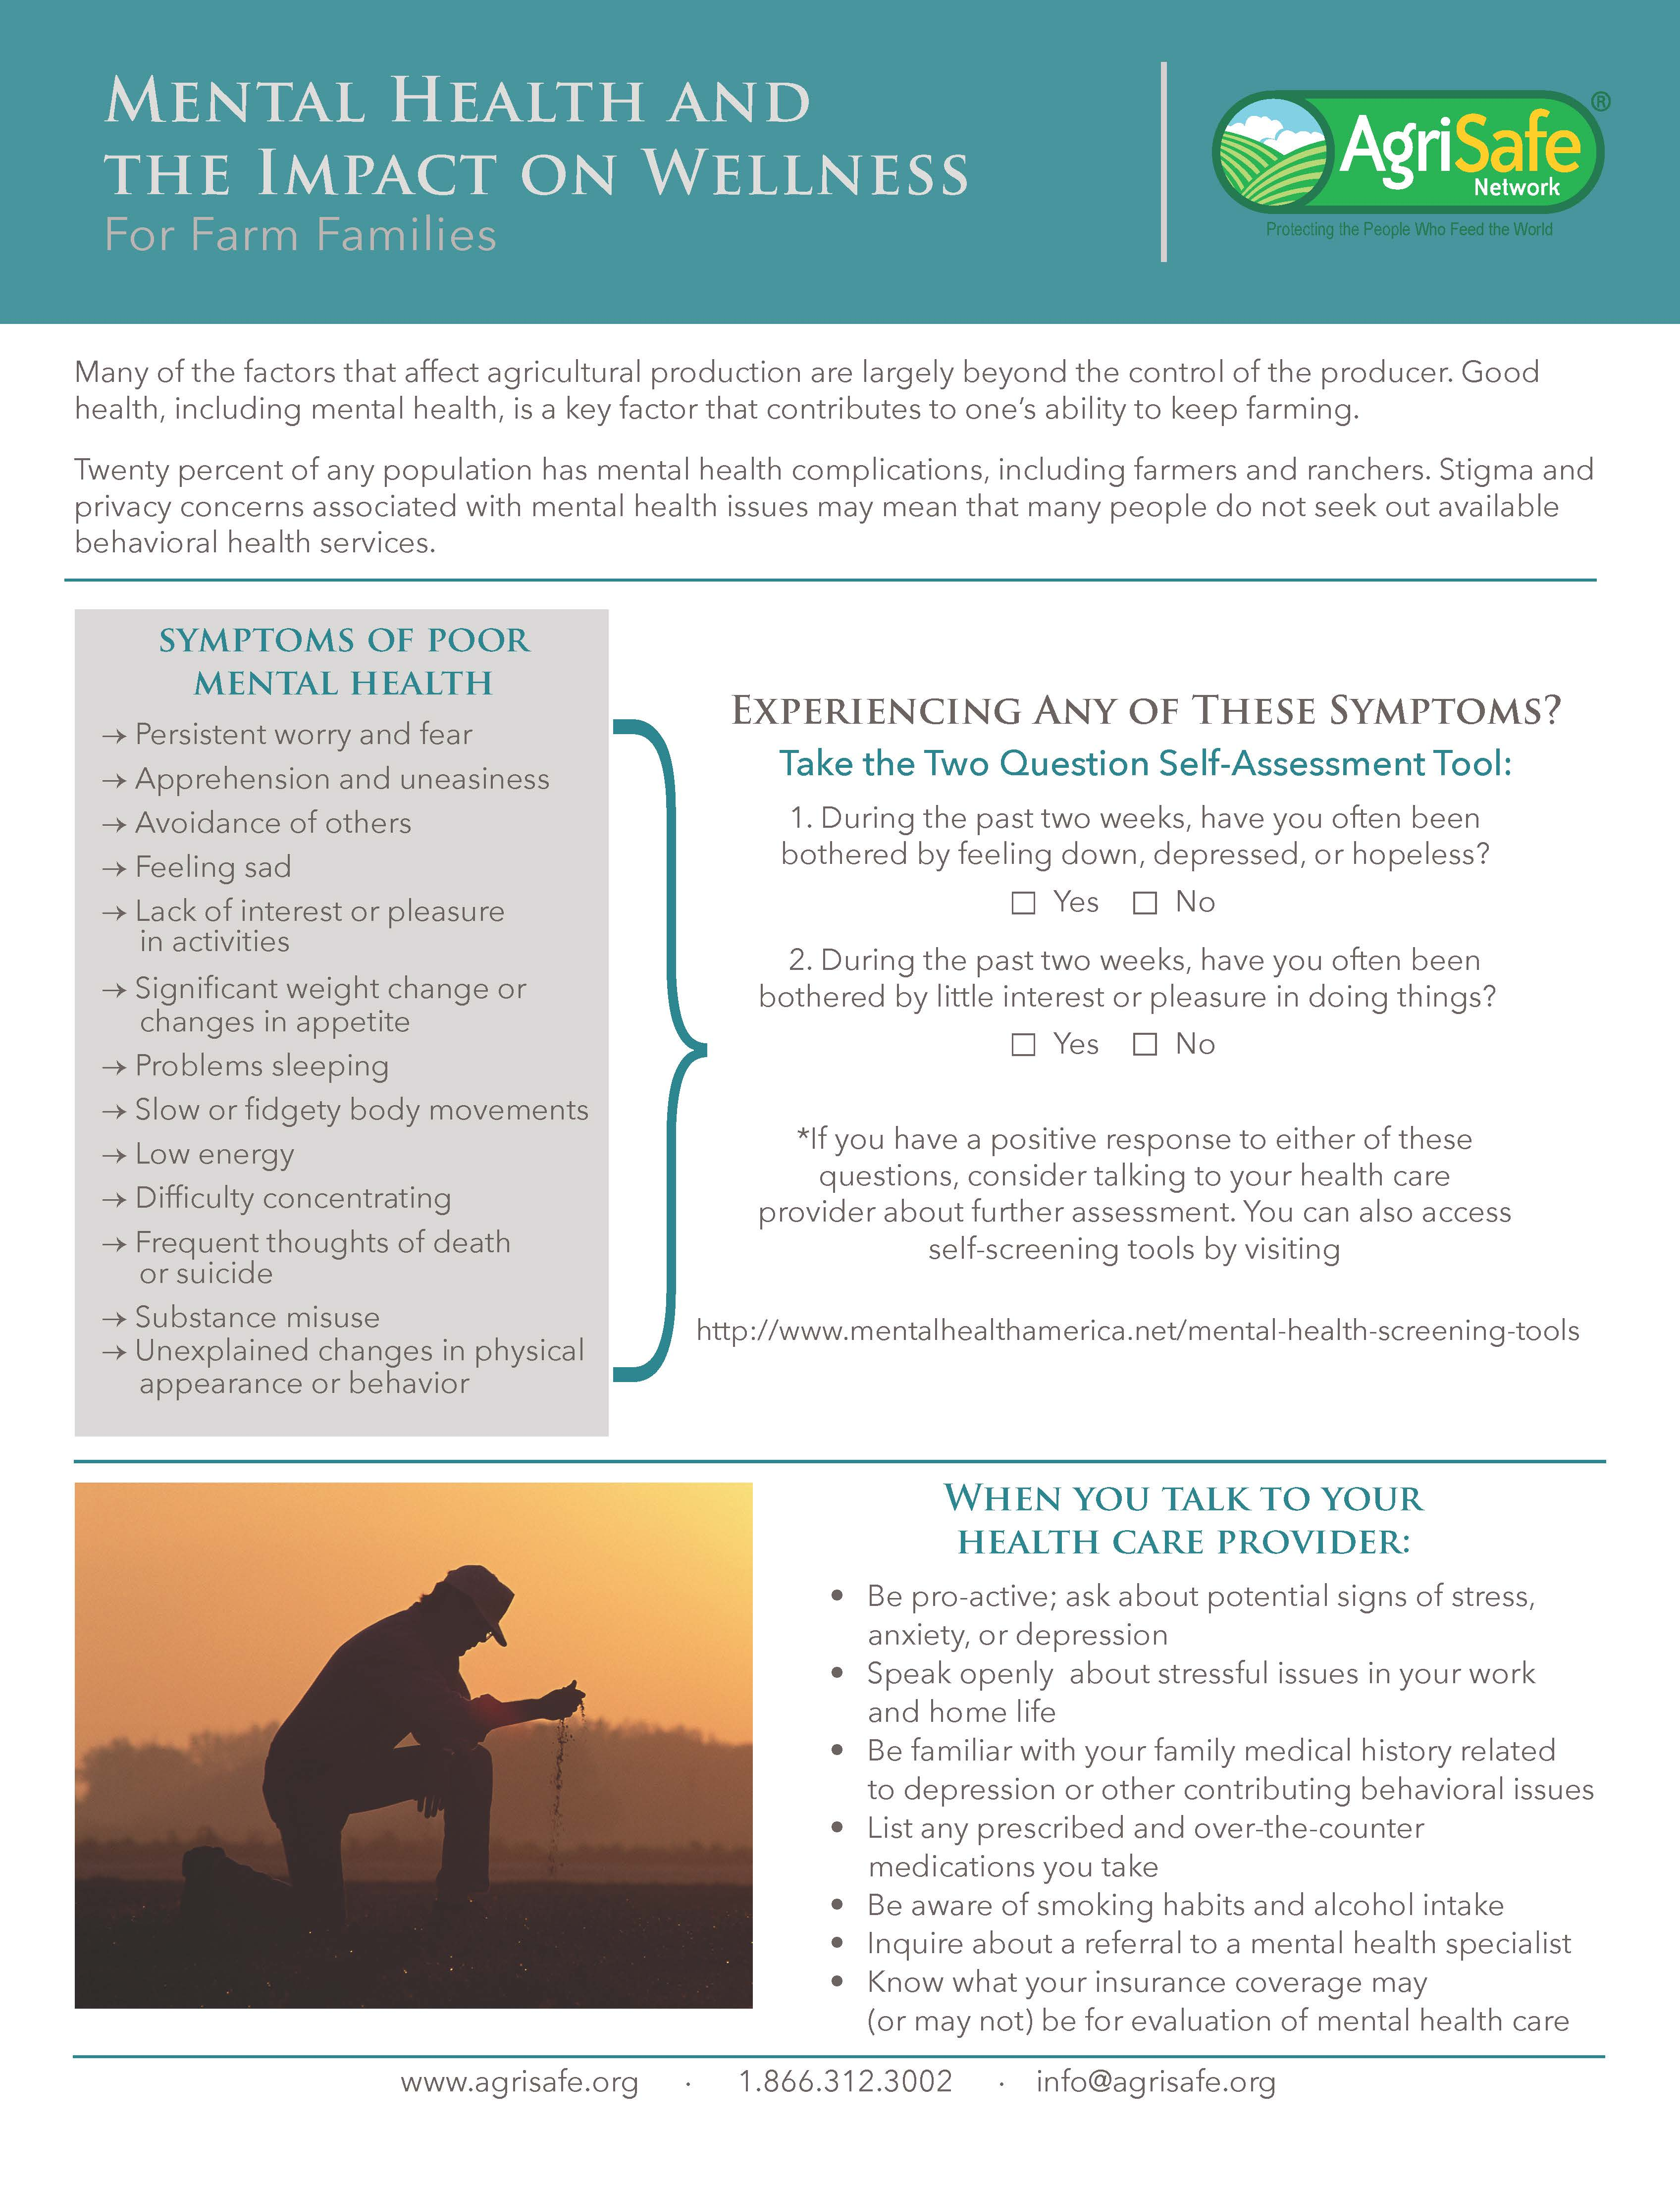 Mental Health Awareness Resource Great Plains Center For Agricultural Safety And Health